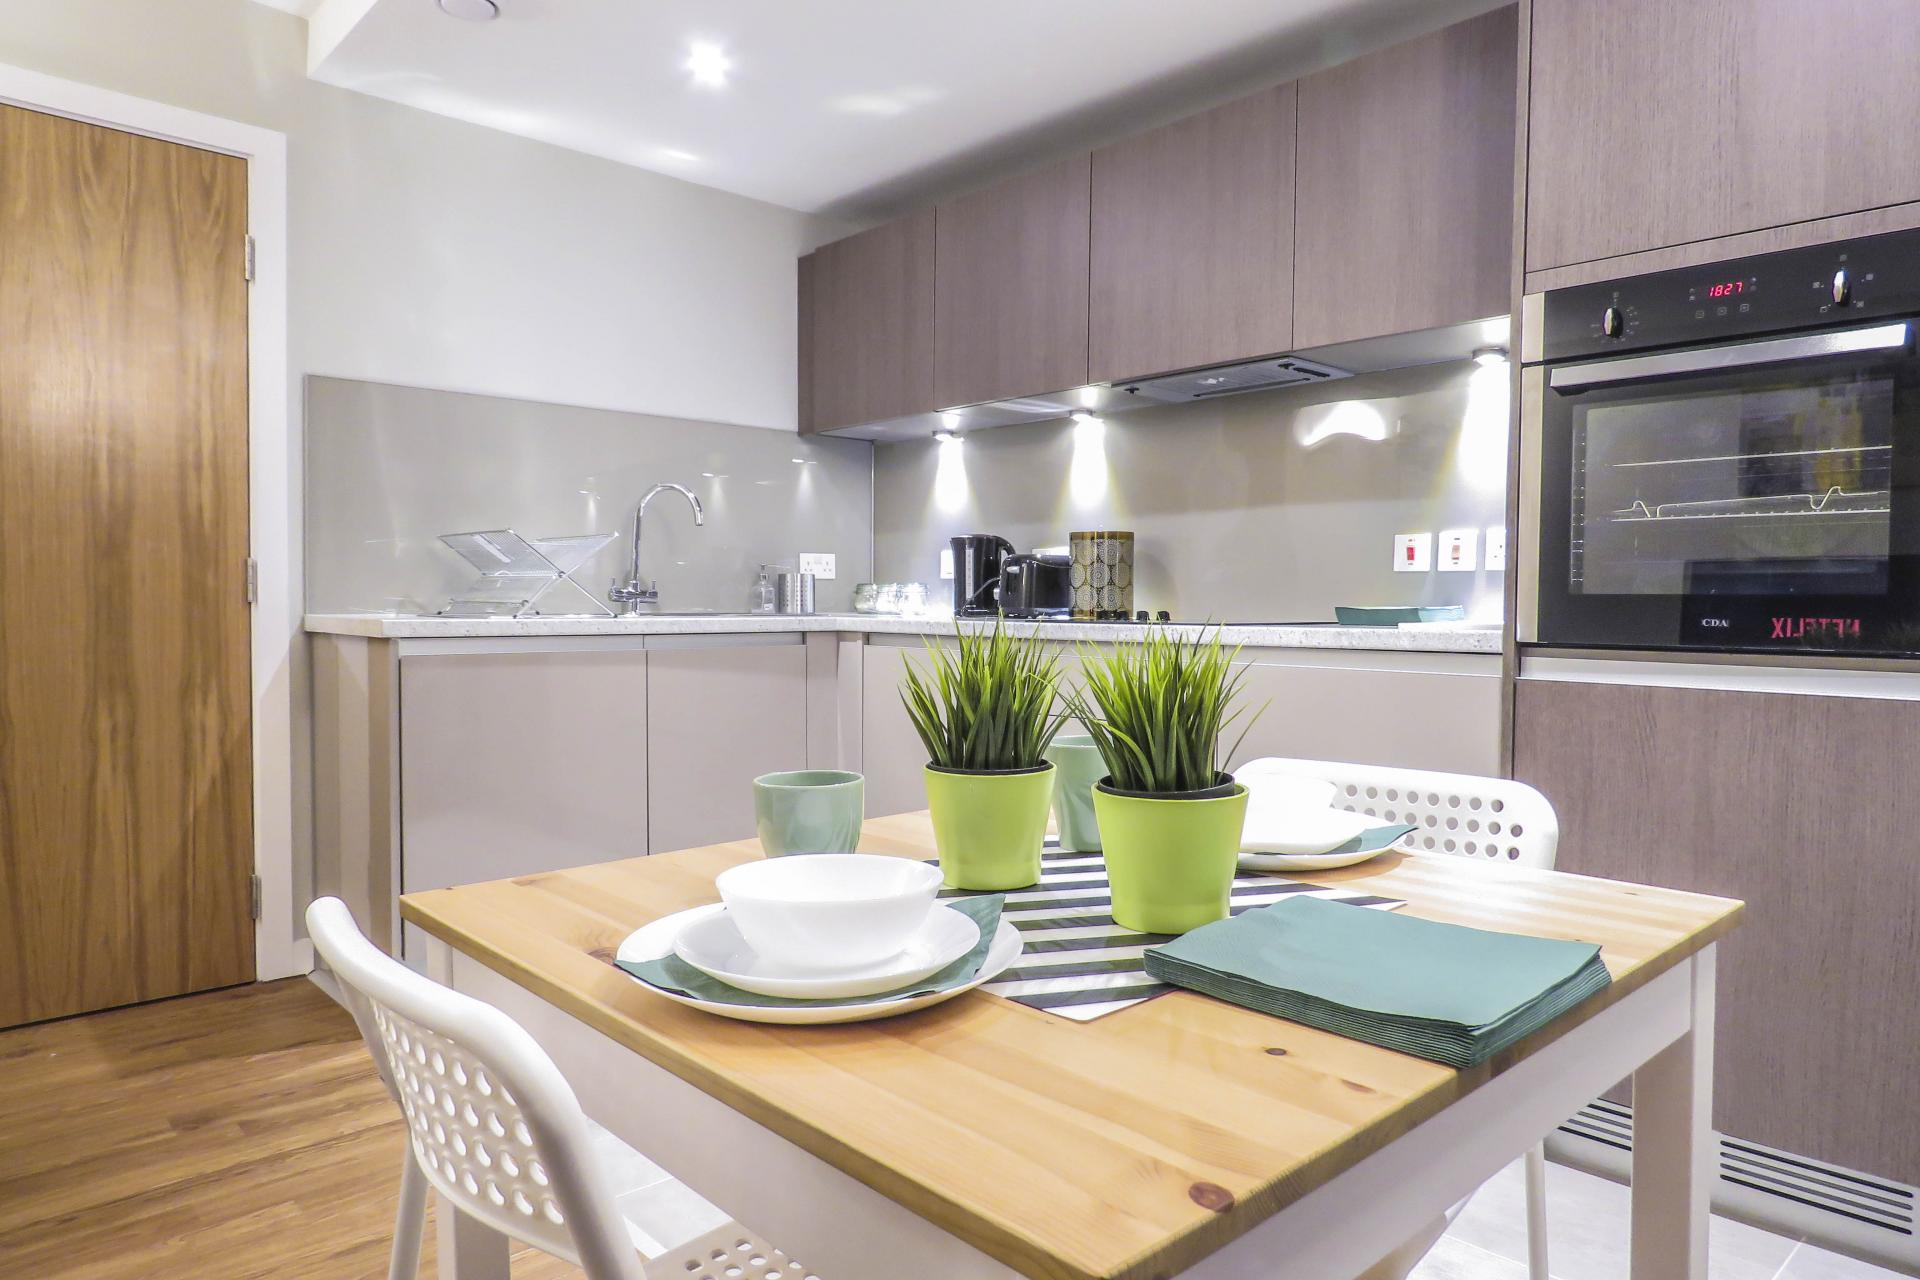 Kitchen at Jewellery Quarter Serviced Apartments